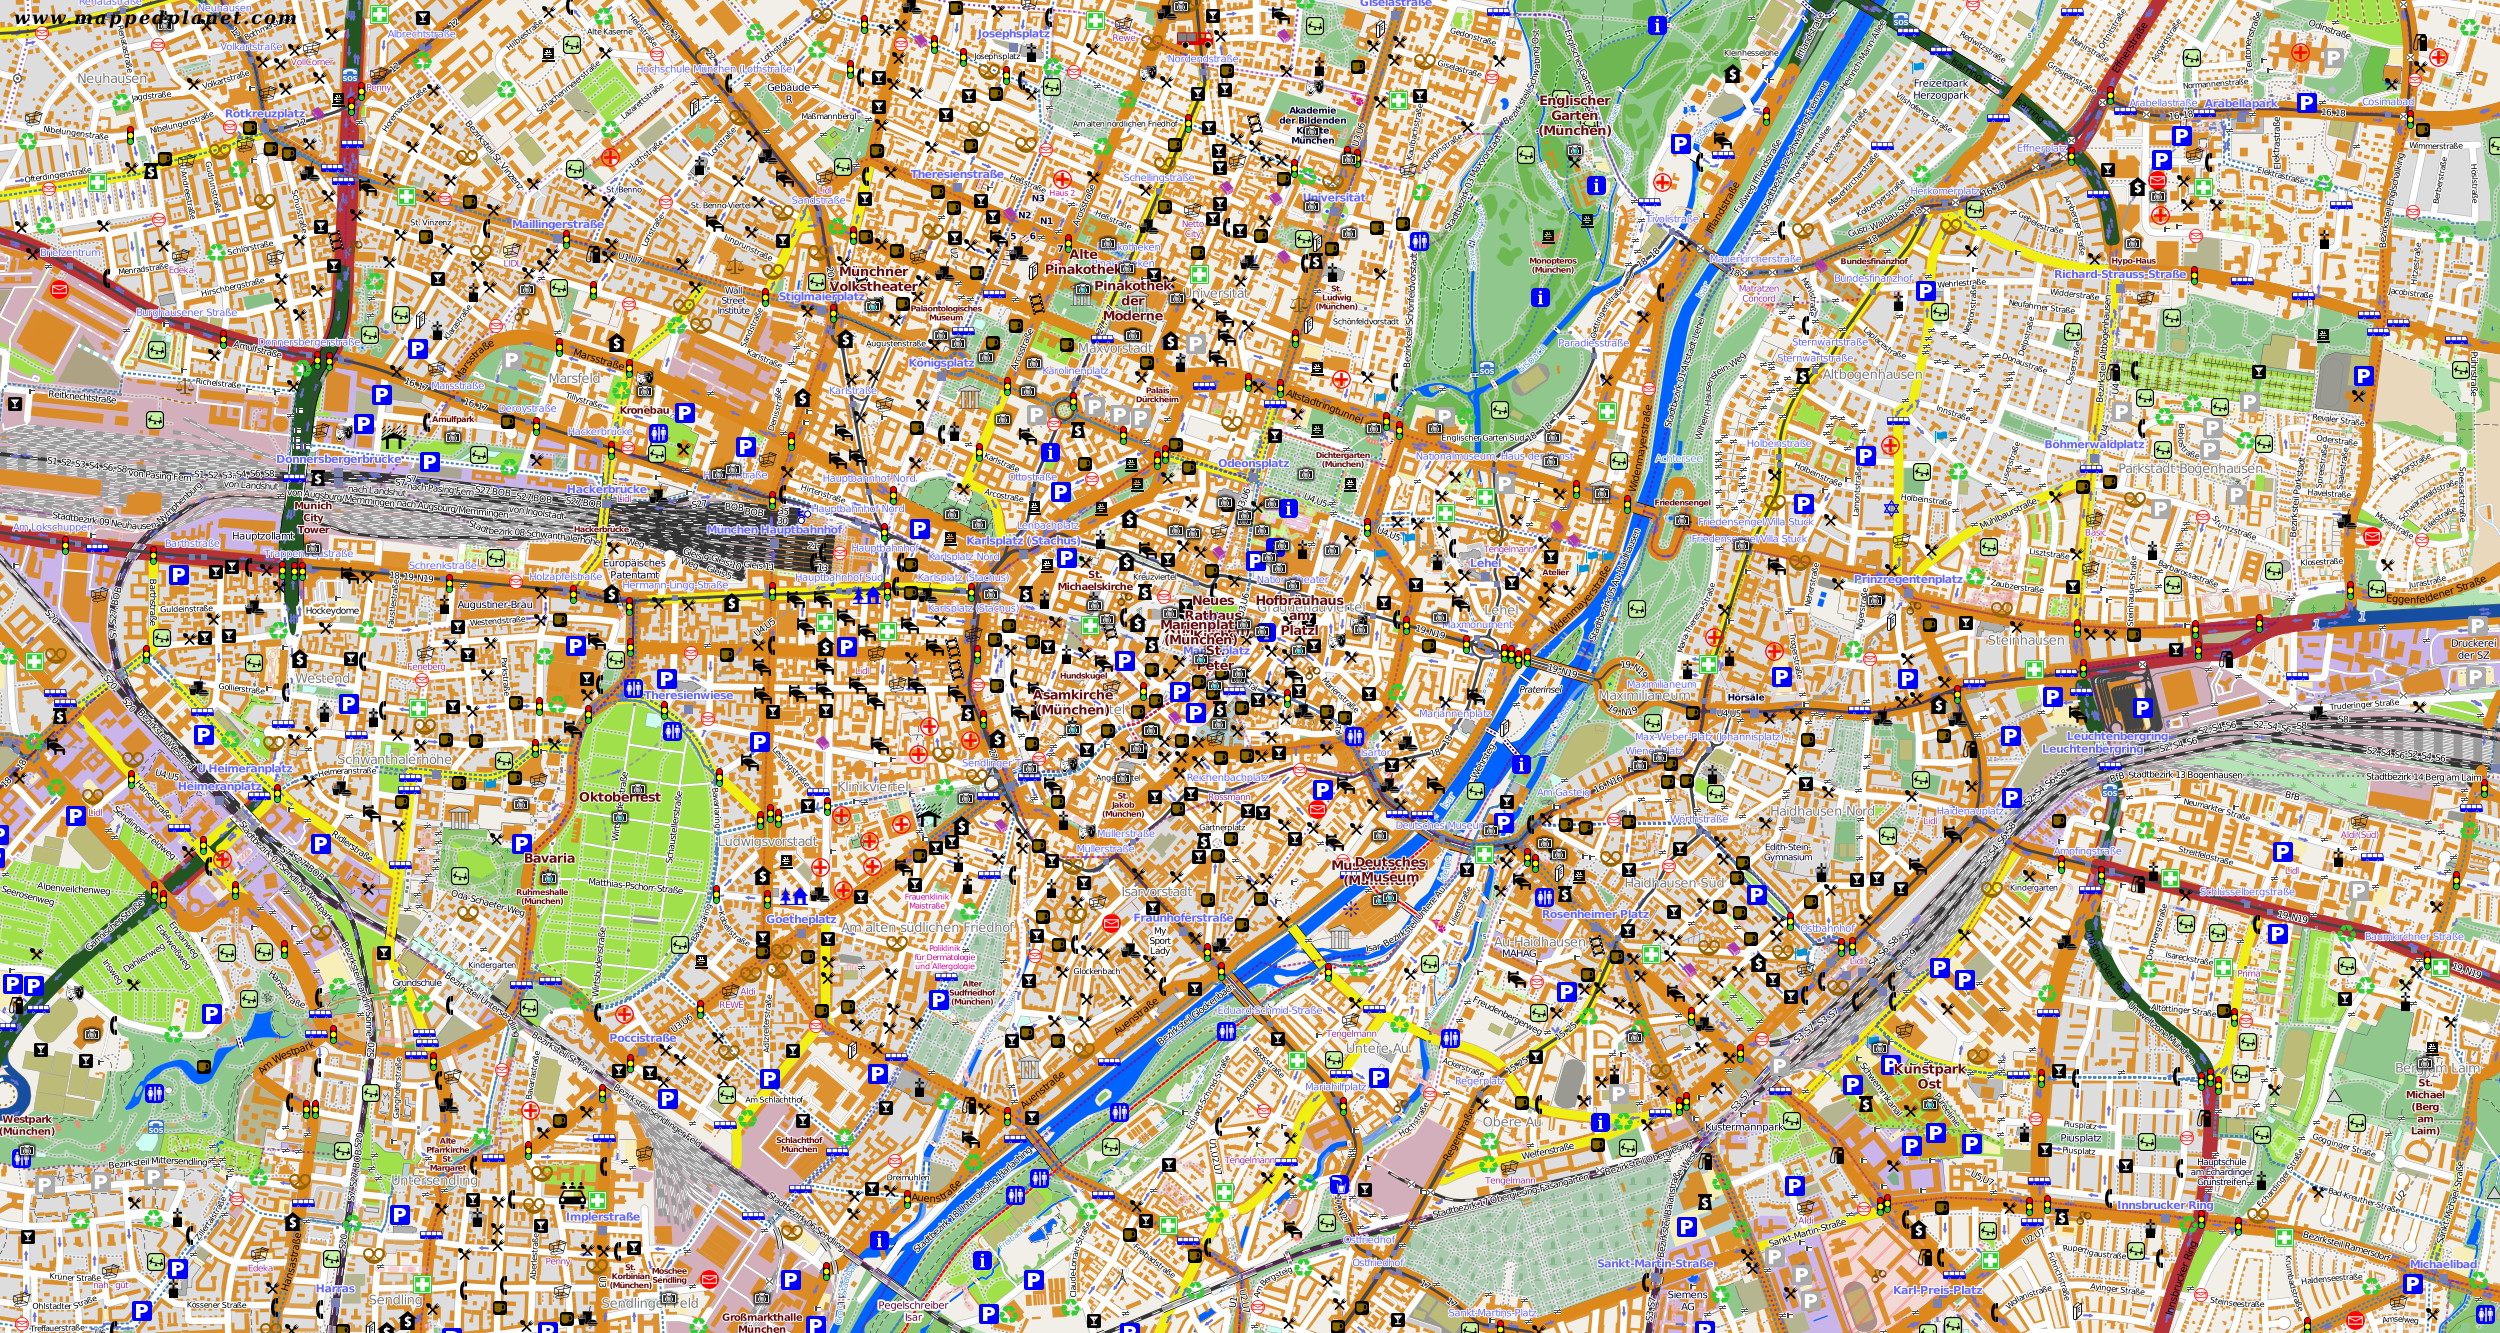 touristic map munich. city maps munich